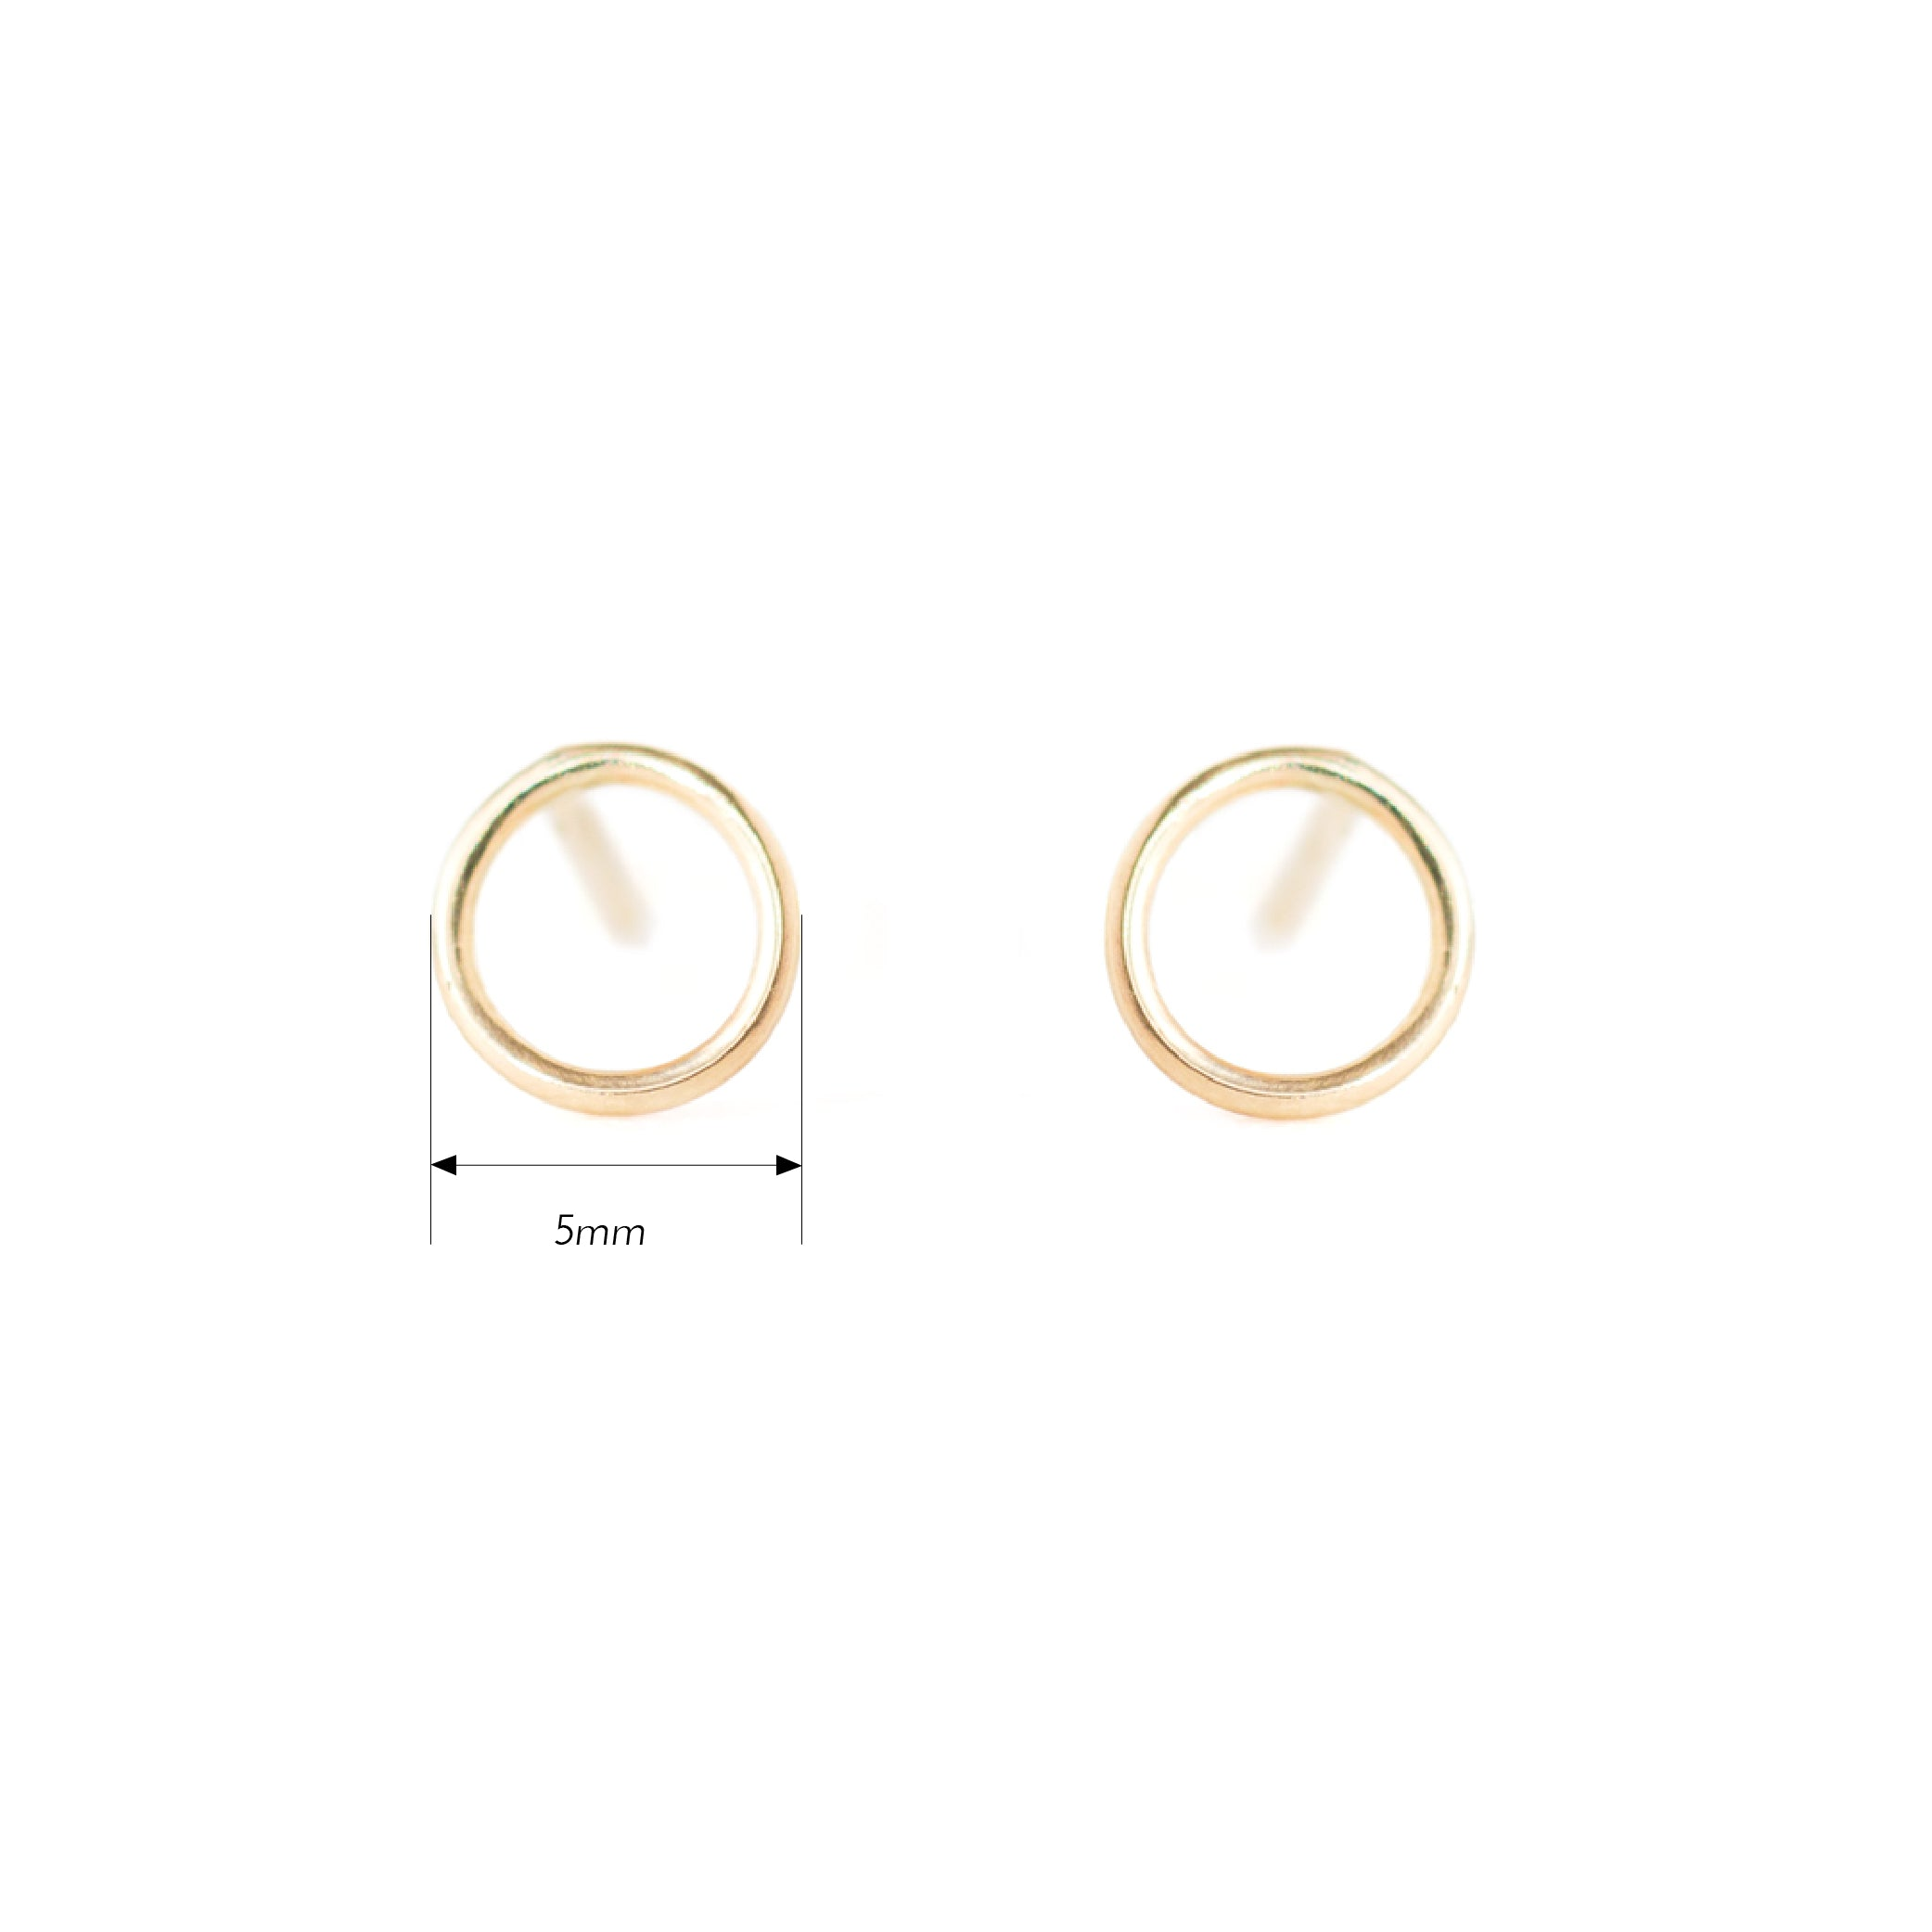 14K Gold Open Circle Stud Earrings by Jamie Park Jewelry